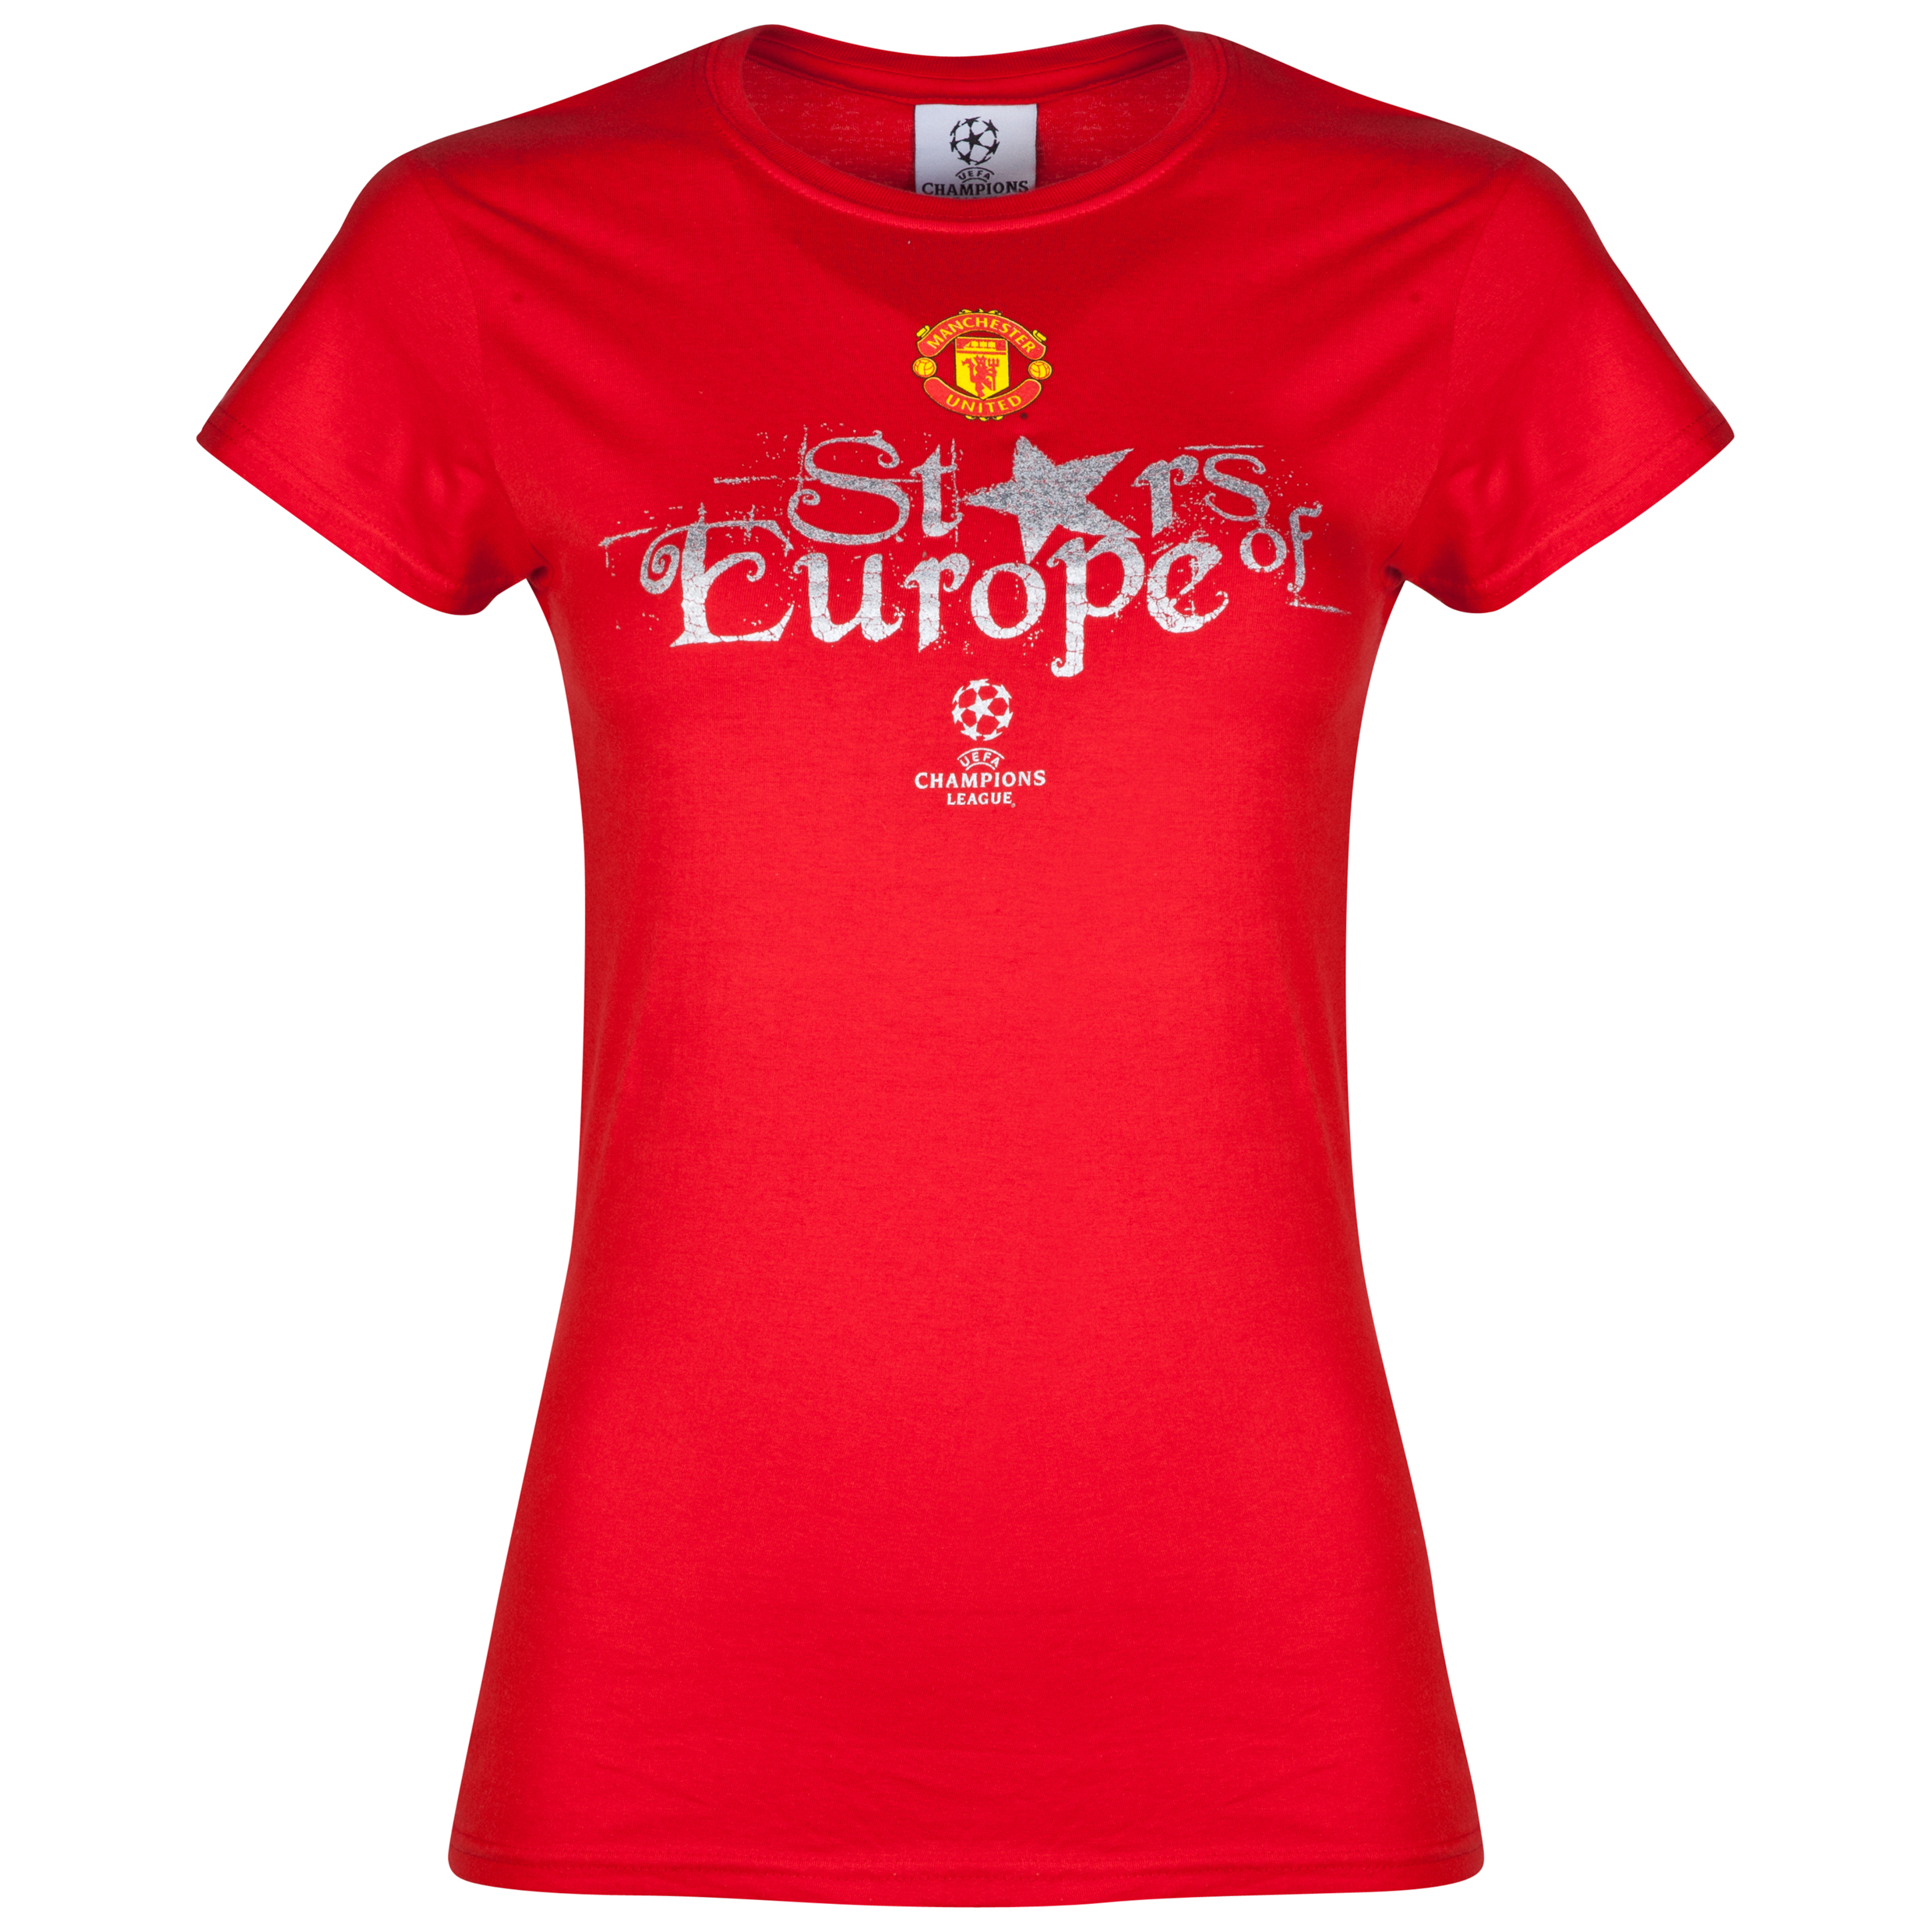 Manchester United UEFA Champions League Stars of Europe T-Shirt - Womens Red